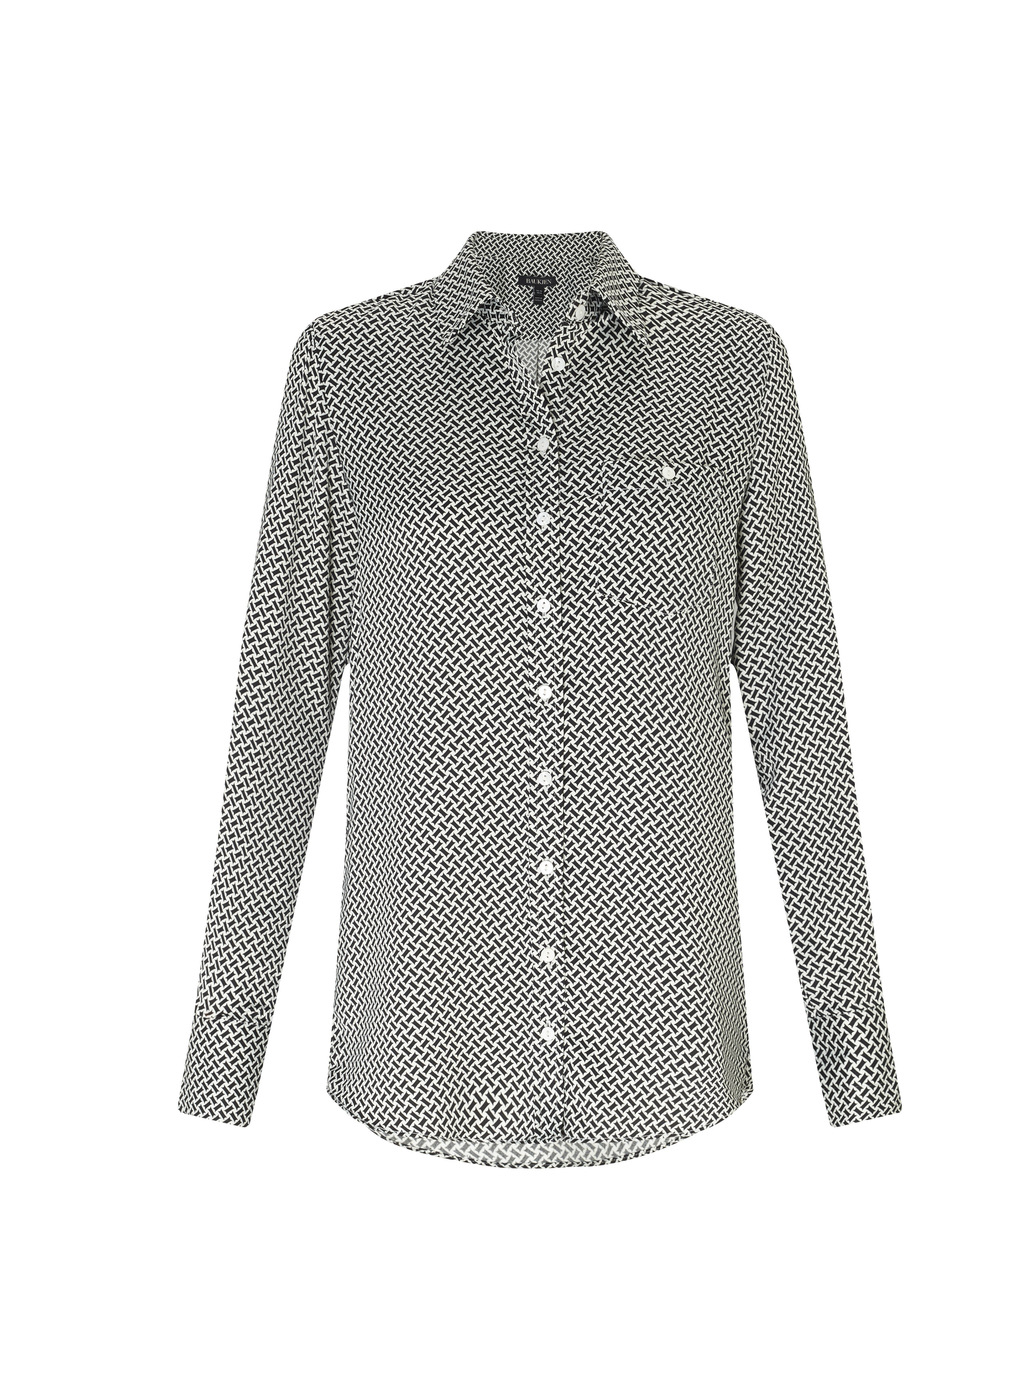 Womenswear Sillwood Relaxed Shirt - neckline: shirt collar/peter pan/zip with opening; style: shirt; secondary colour: white; predominant colour: black; occasions: casual; length: standard; fibres: polyester/polyamide - 100%; fit: body skimming; sleeve length: long sleeve; sleeve style: standard; pattern type: fabric; pattern: patterned/print; texture group: woven light midweight; multicoloured: multicoloured; season: a/w 2016; wardrobe: highlight